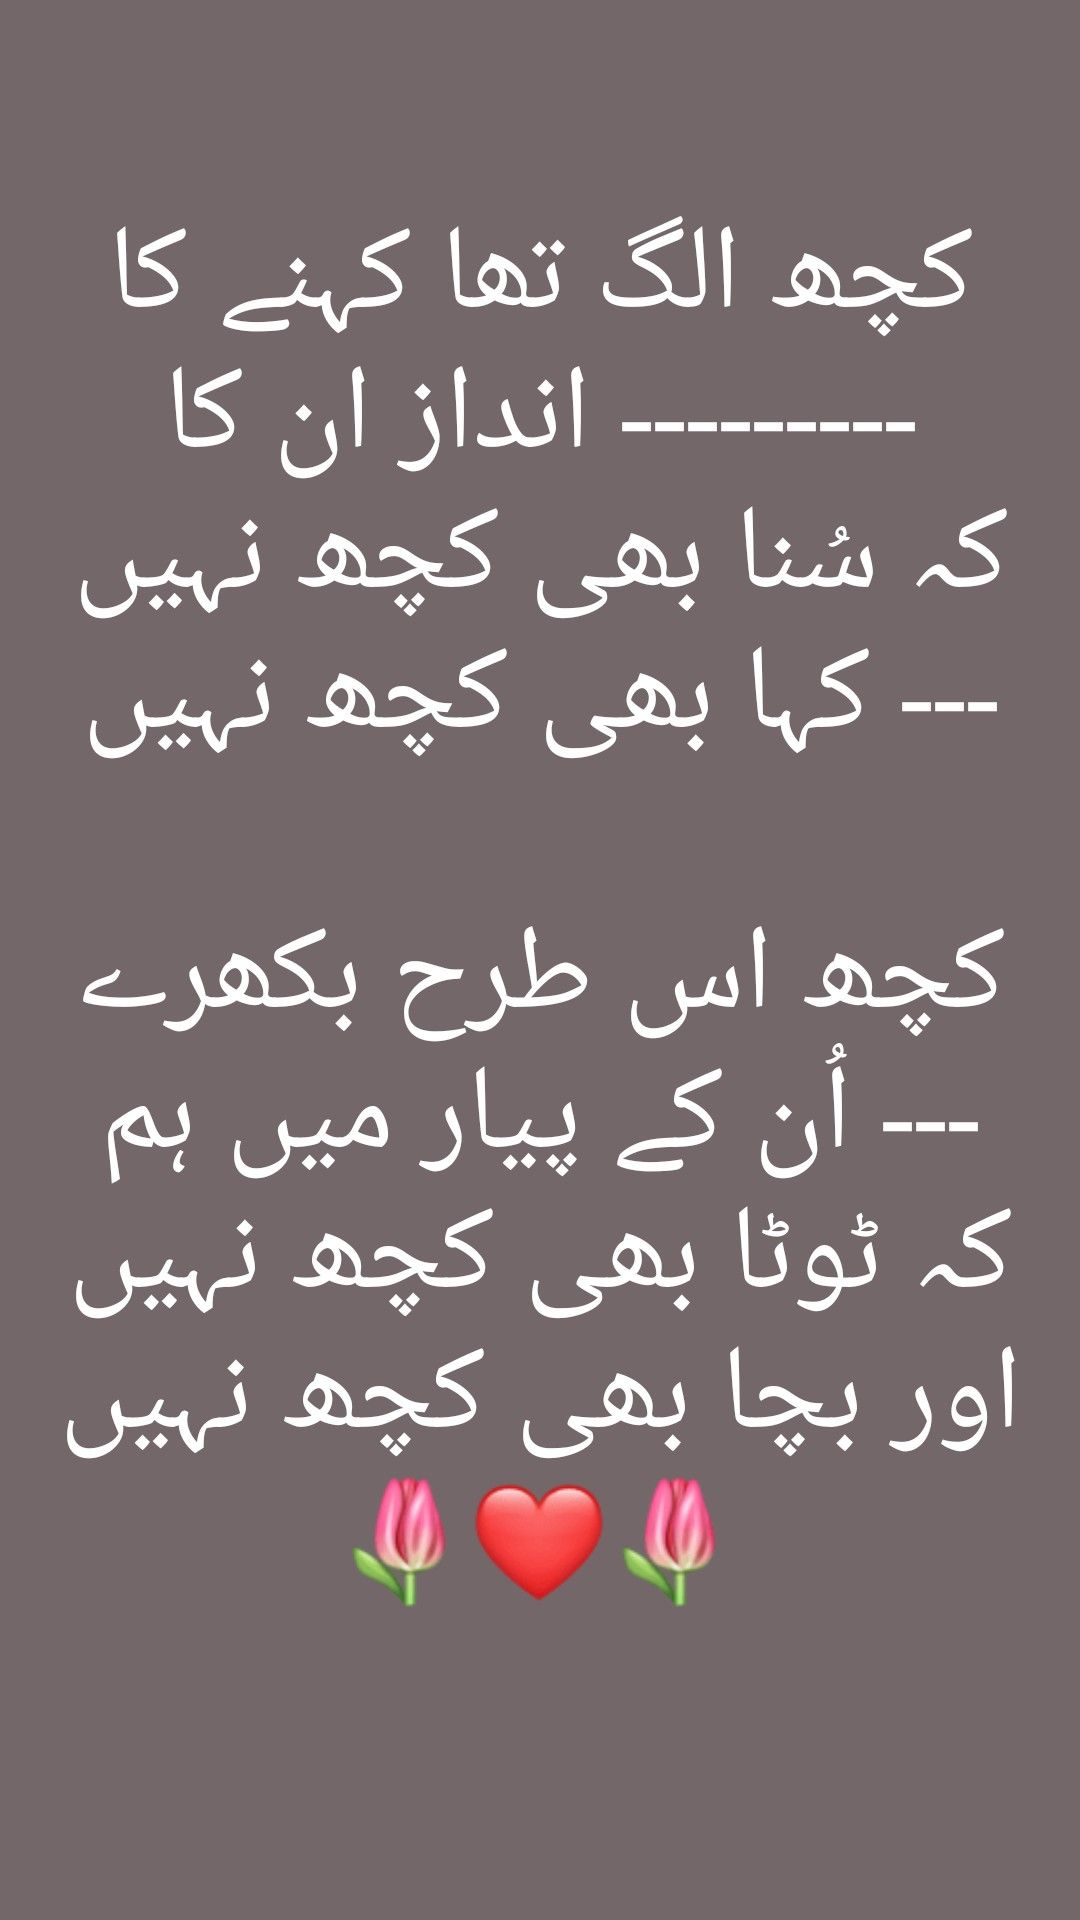 Funny Text Message In Urdu : funny, message, ❣️ɪͫ°᭄ˢᴬ-ᴺᴬᴴ•͜͡❣️, ❣️My, BoArD..!!♥️, Funny, Quotes, Instagram,, Quotes,, People